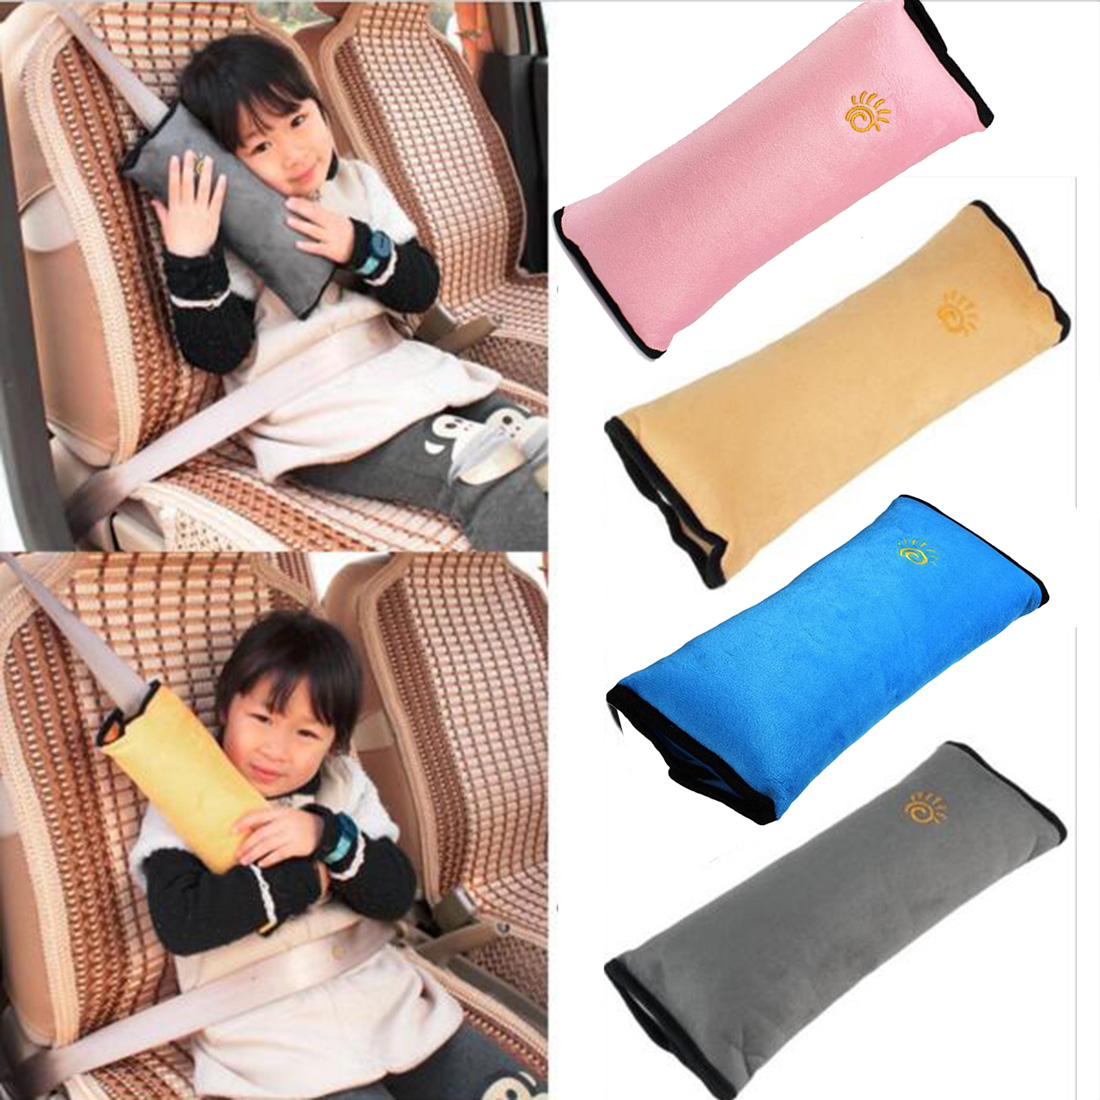 Honey Baby Pillow Safety Seat Belt Harness Shoulder Pad Cover Children Protection Covers Cushion Support Strollers Accessories